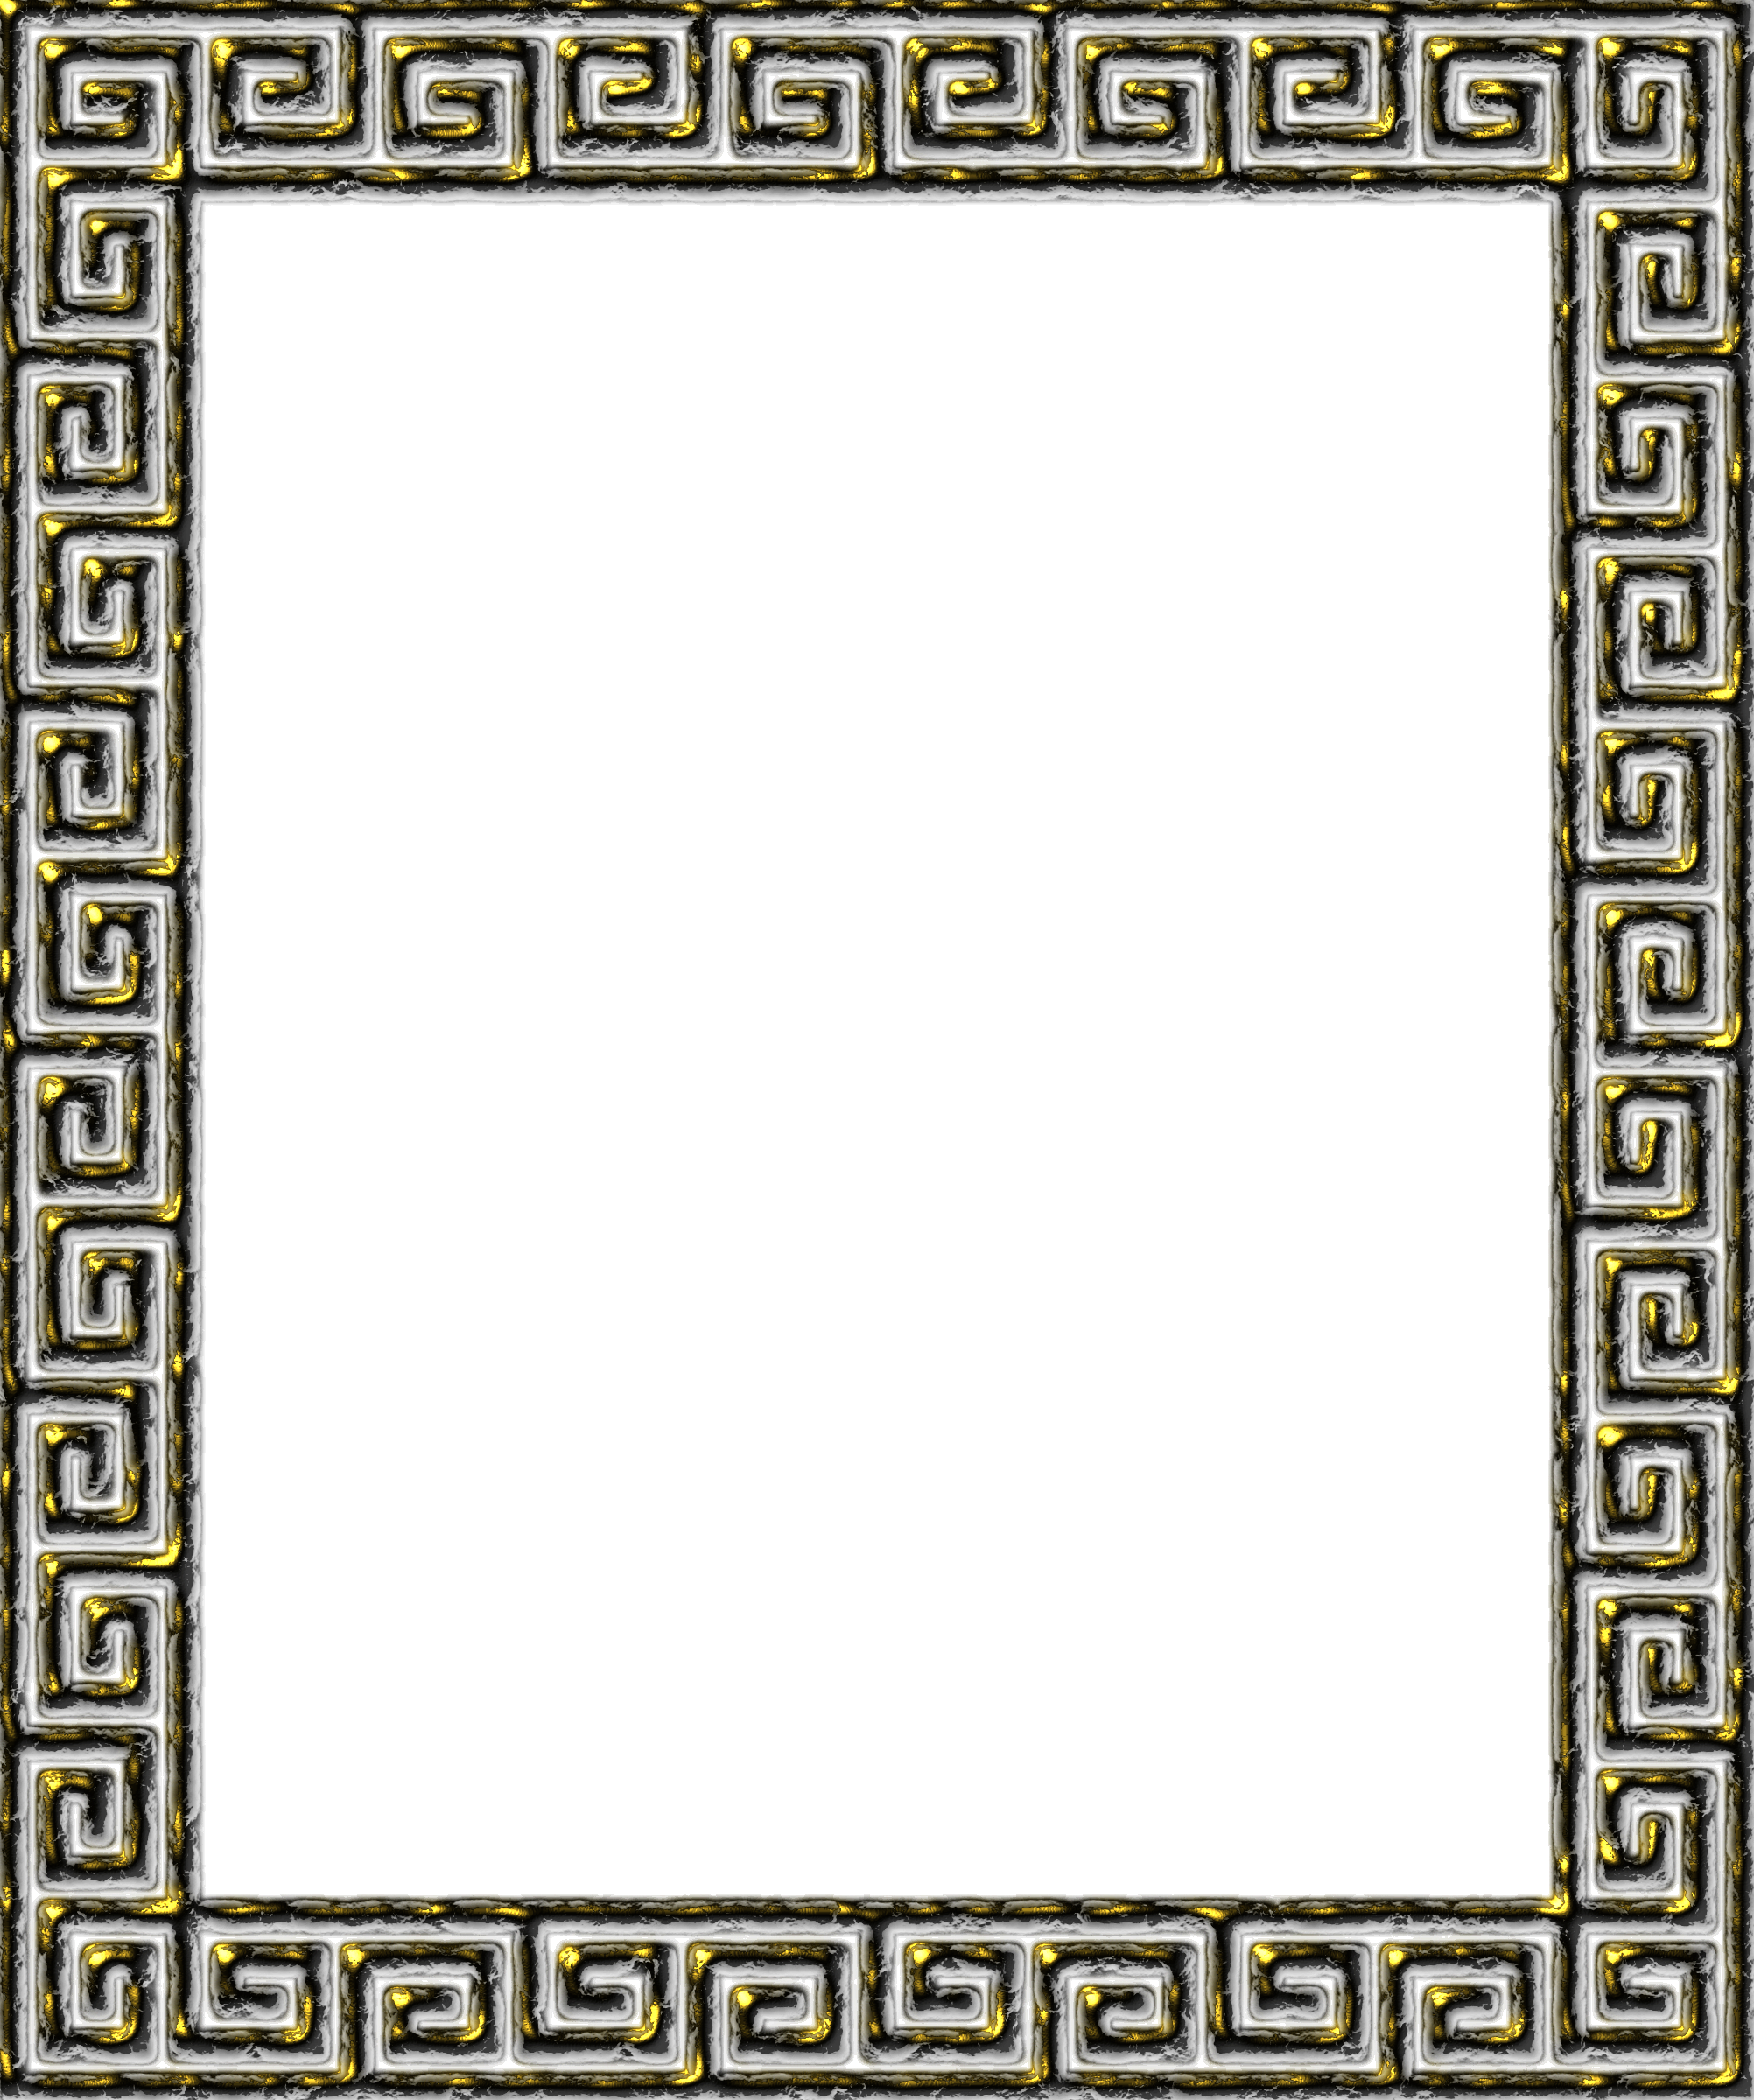 Greek key border png. Frame icons free and